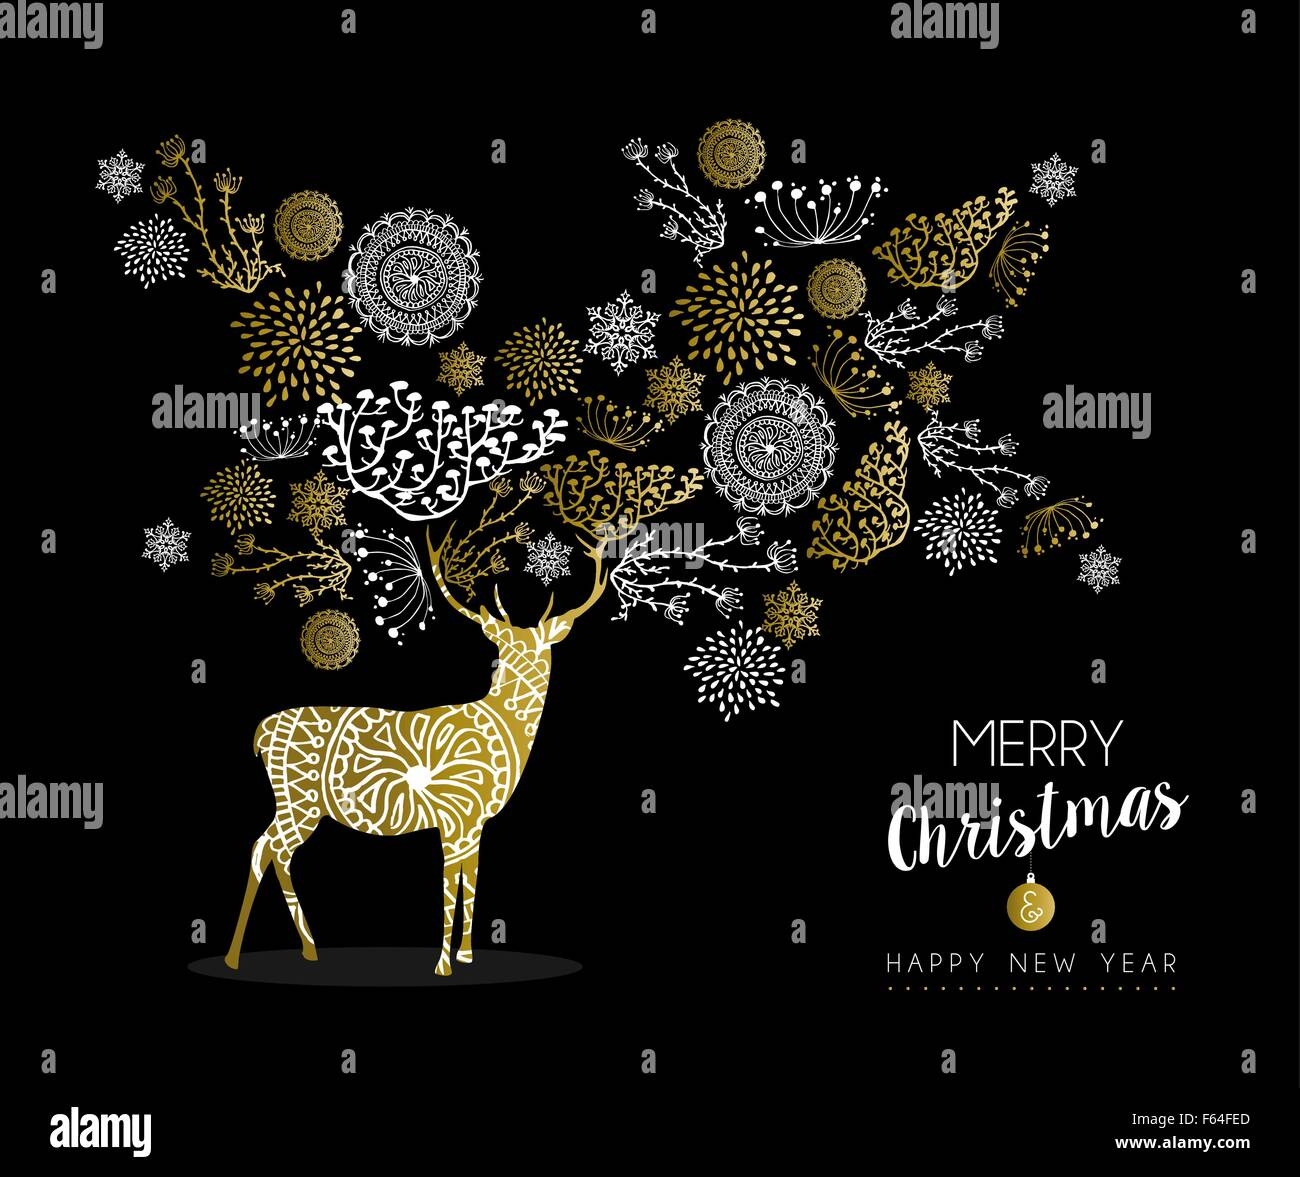 merry christmas happy new year luxury golden deer design on black background with nature elements and label ideal for card